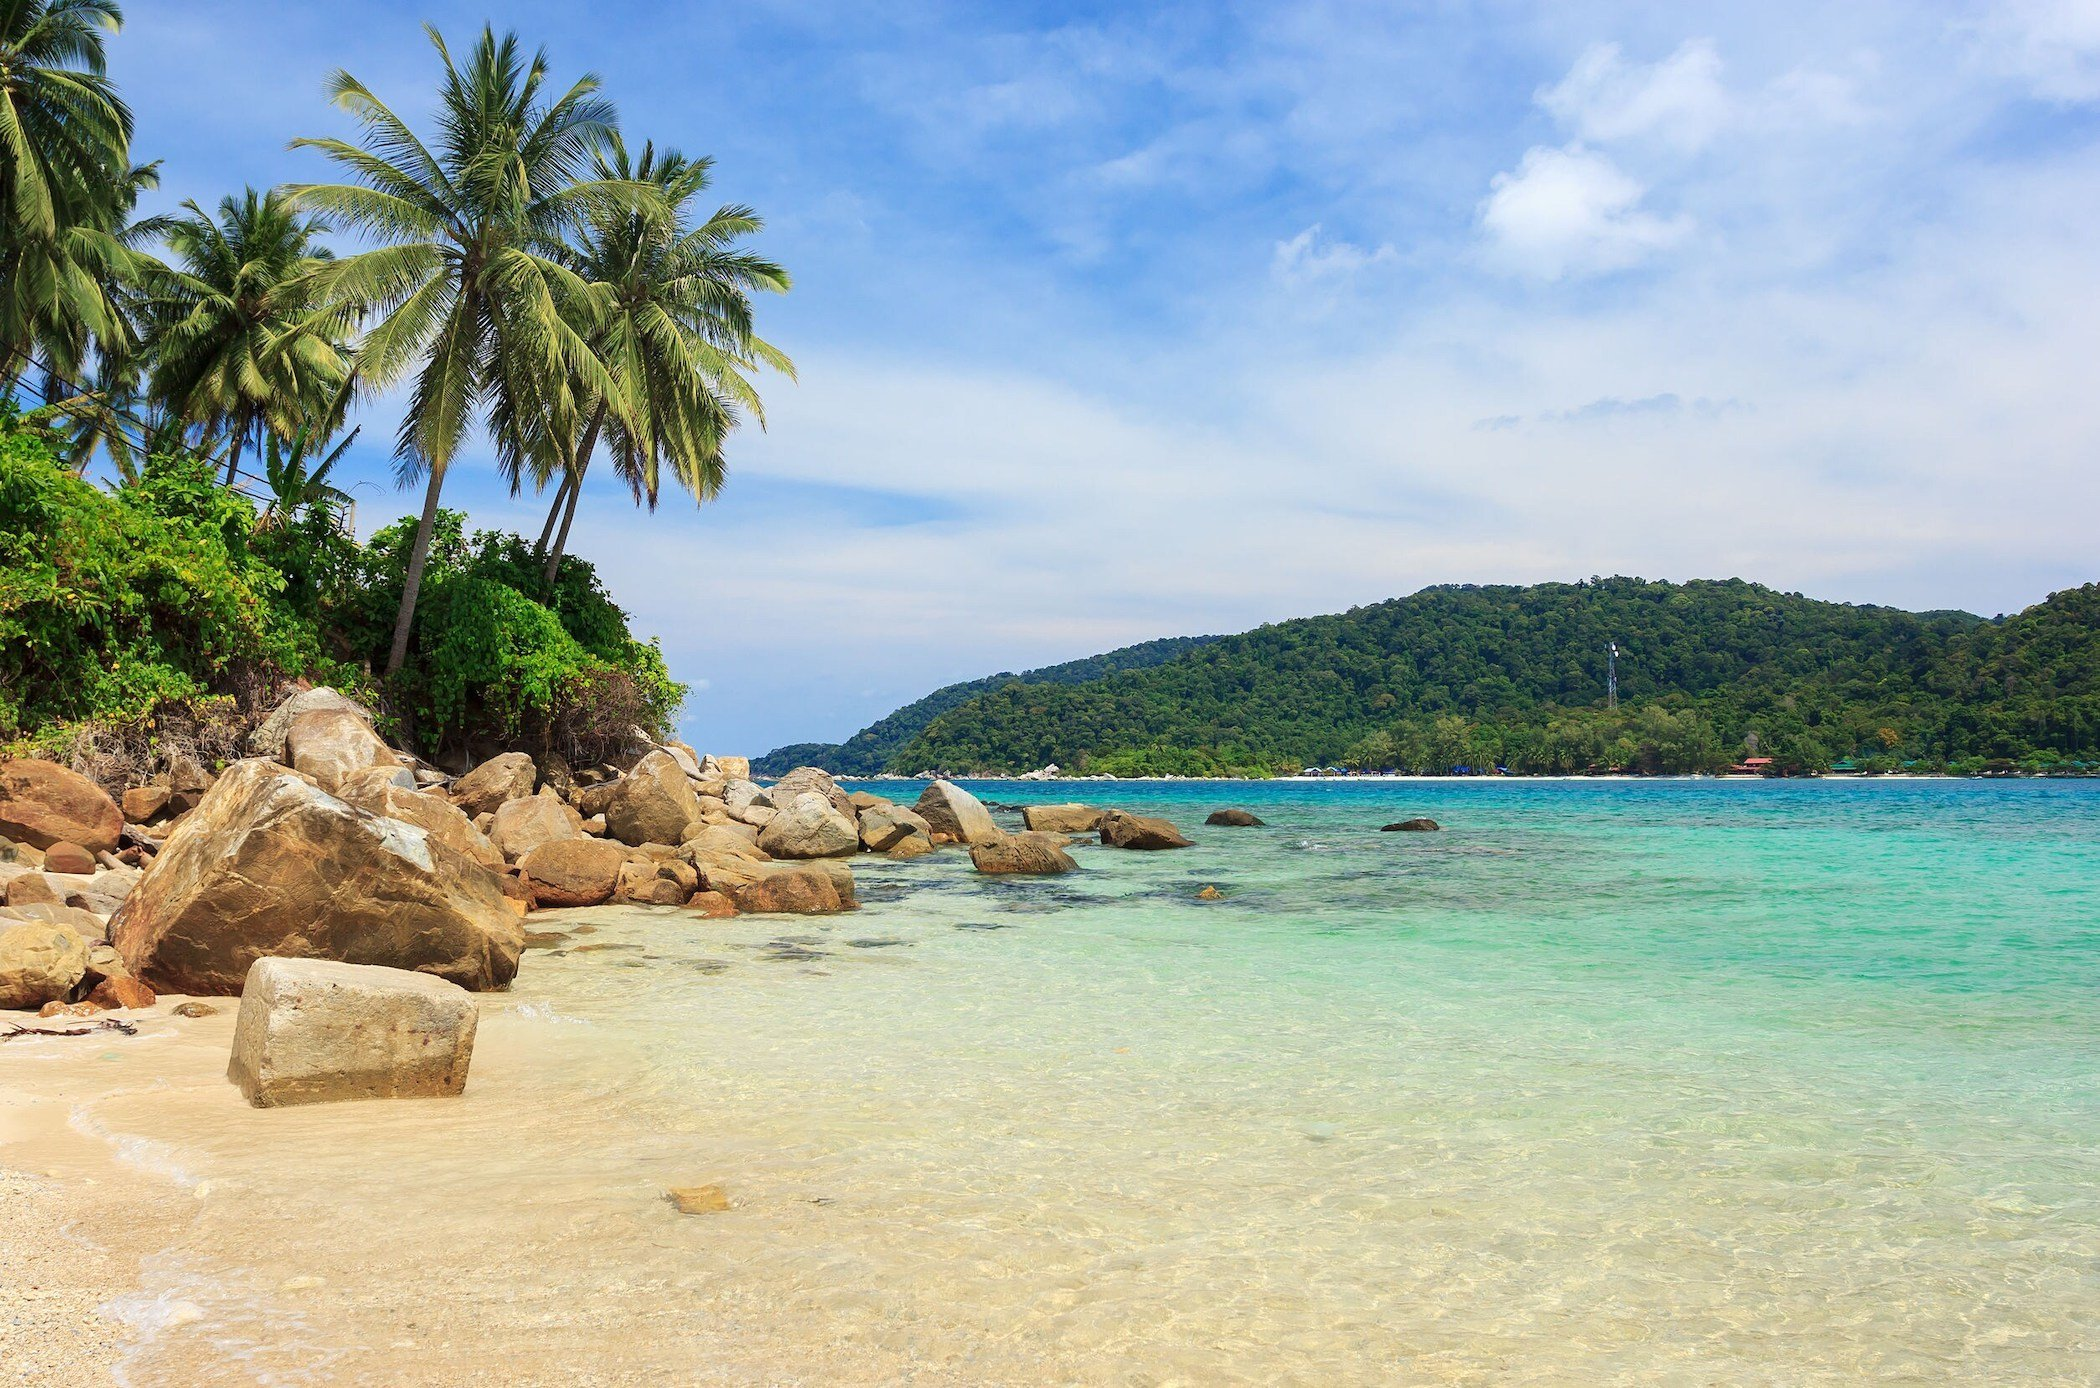 Bellissimo mare alle isole Perhentian in Malesia